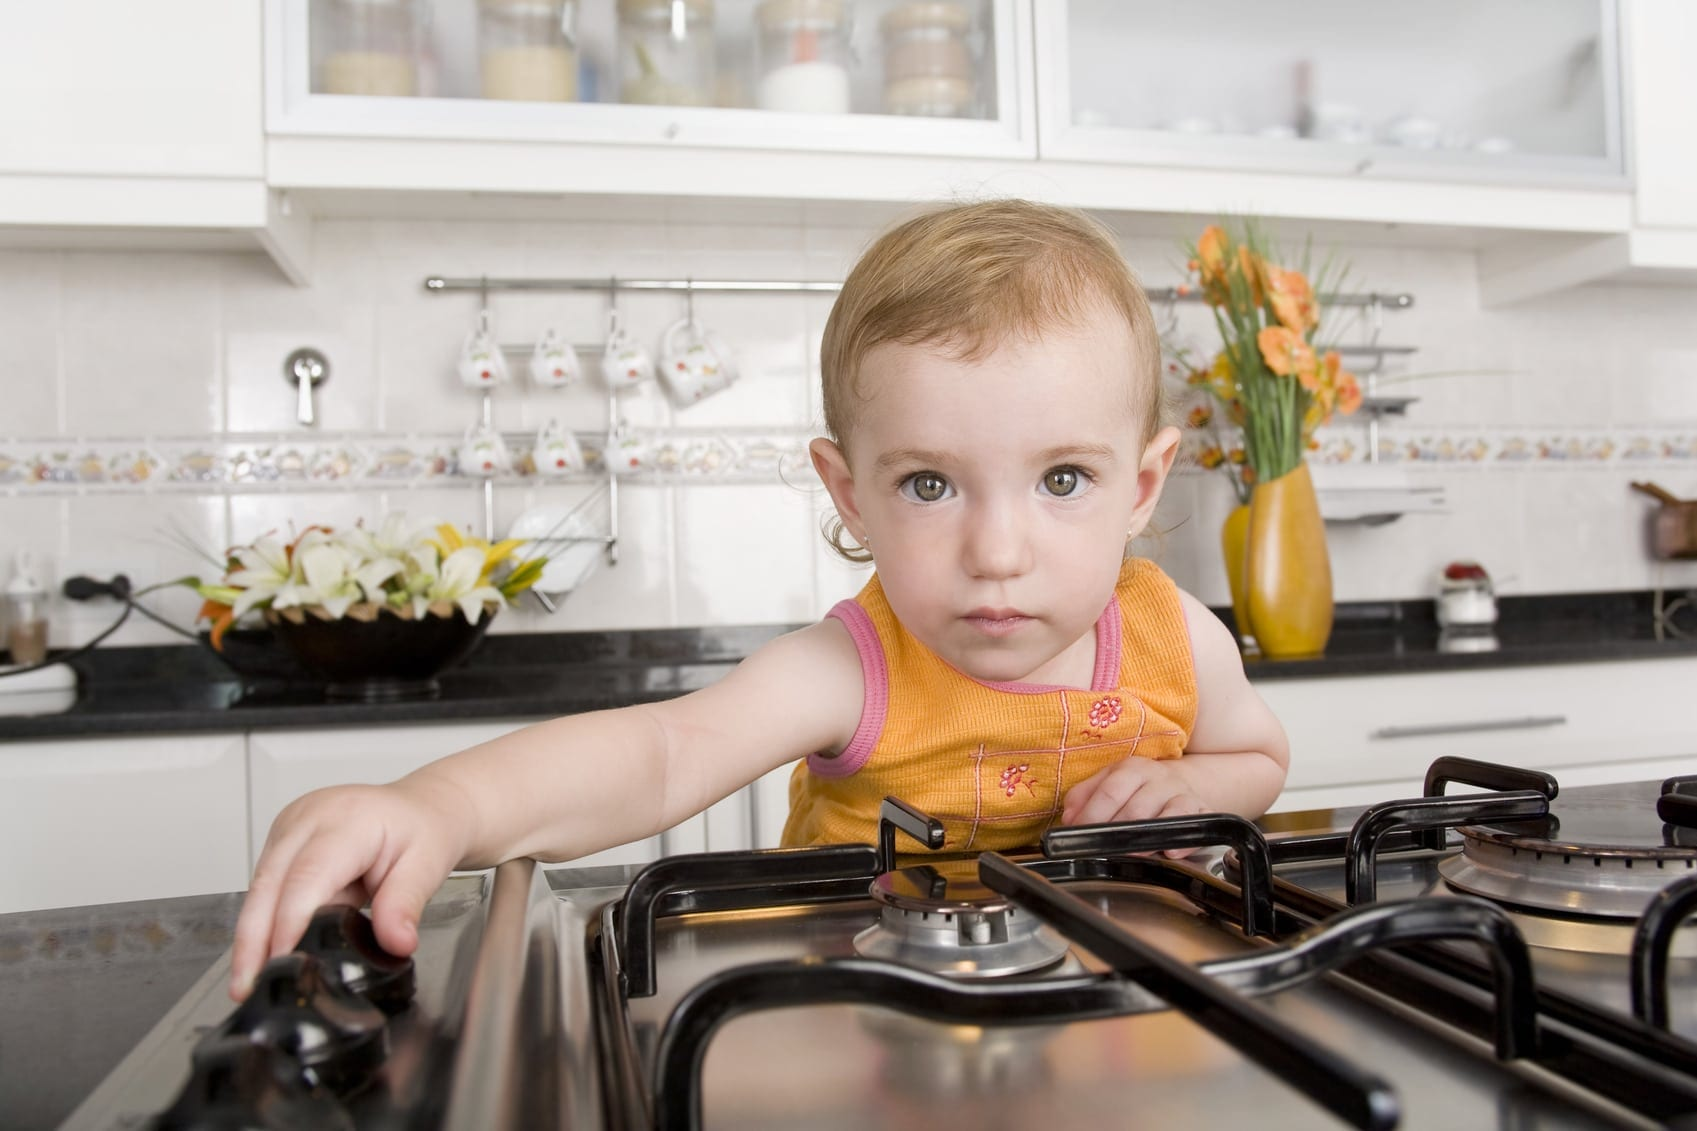 Young Child Touching The Switches On A Stove Stock Photo